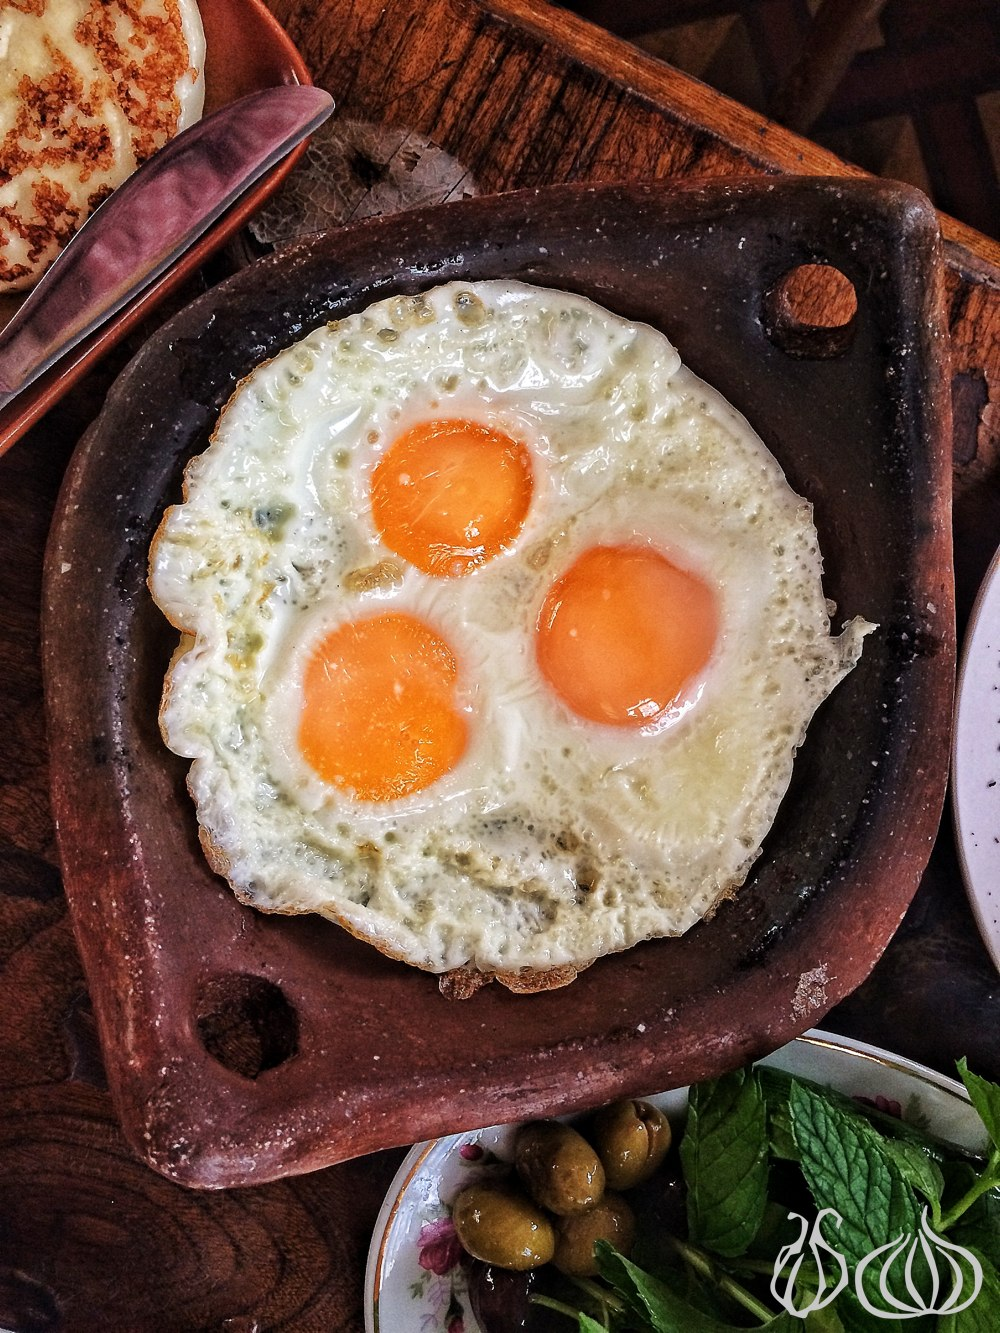 al-falamanki-restaurant-special-breakfast-labneh-cheese-eggs372014-09-15-09-28-26